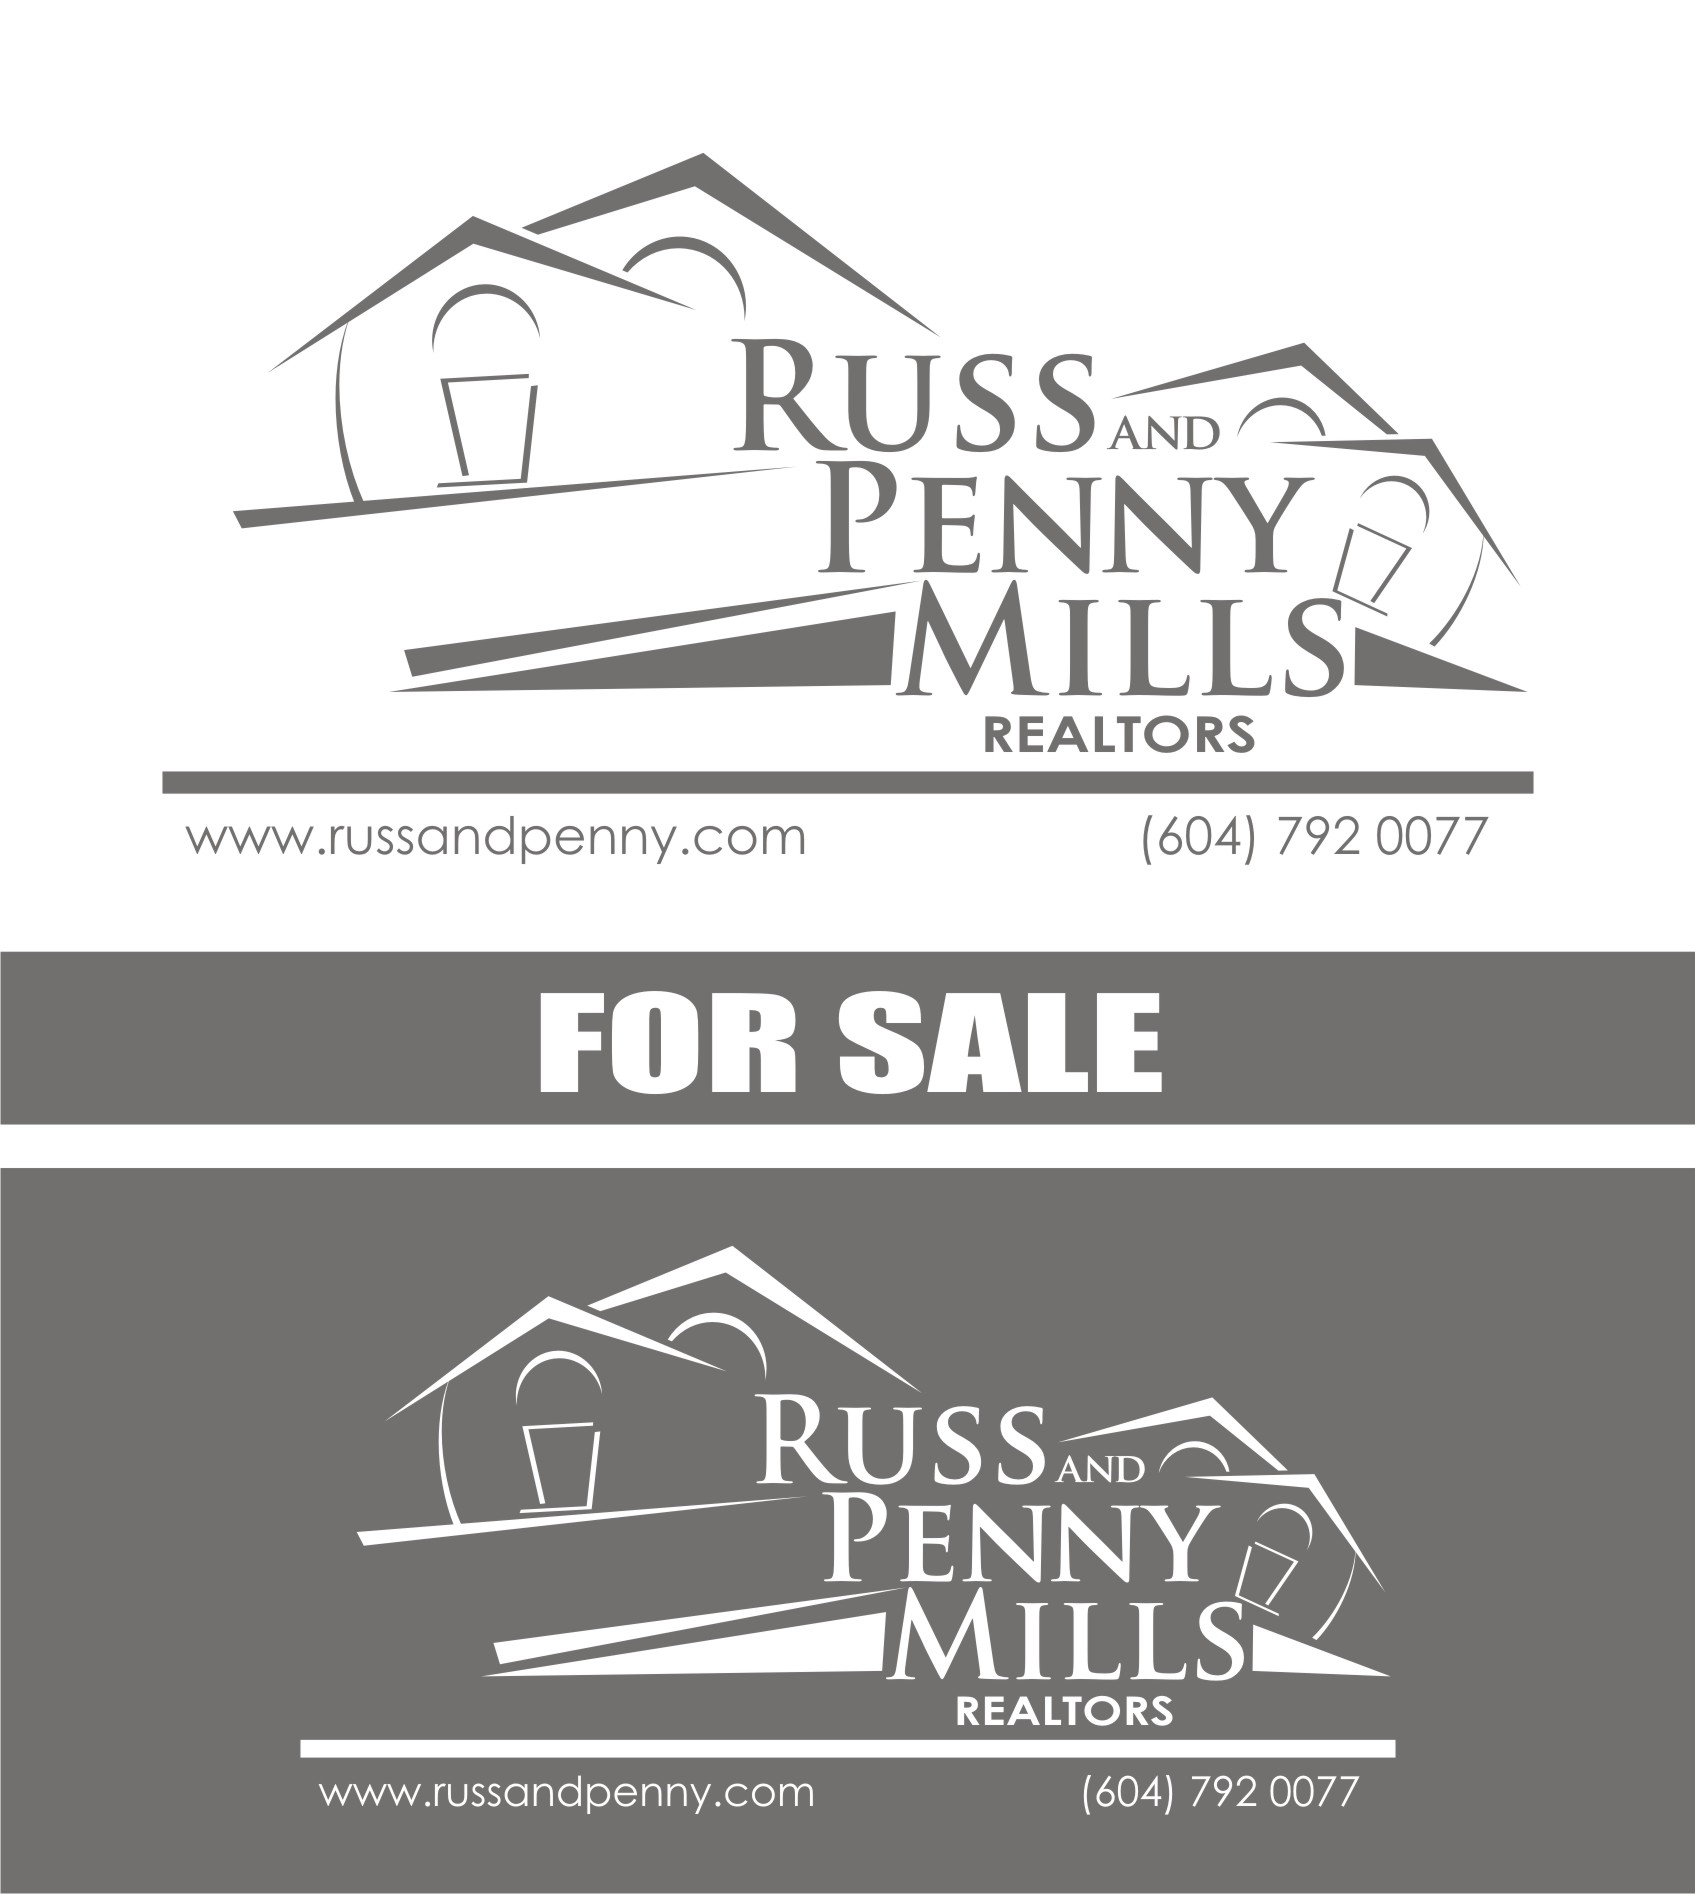 Custom Design by Private User - Entry No. 58 in the Custom Design Contest Fun Custom Design for Russ and Penny Mills (realtors).